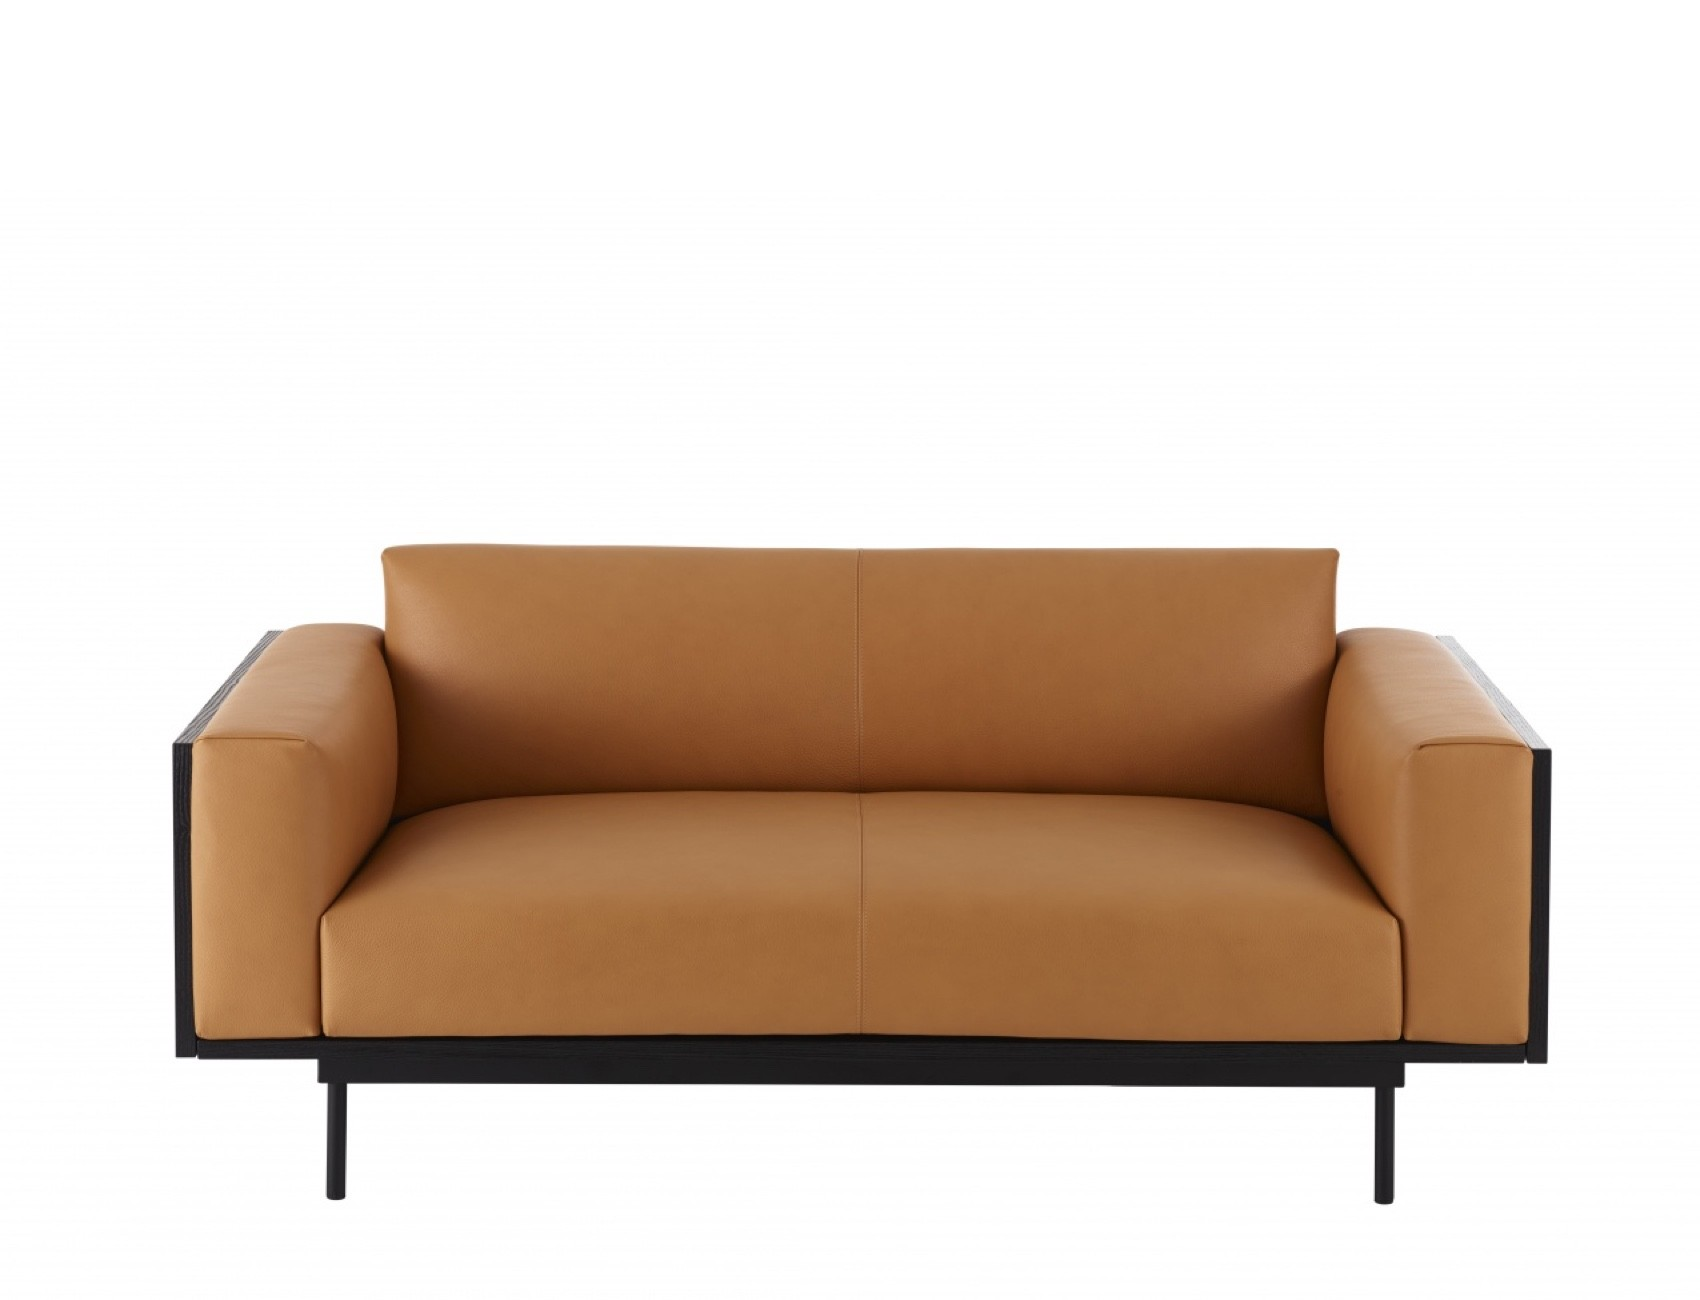 Sofa Funktion Swedese Wood 2 Seater Sofa Funktion Alley